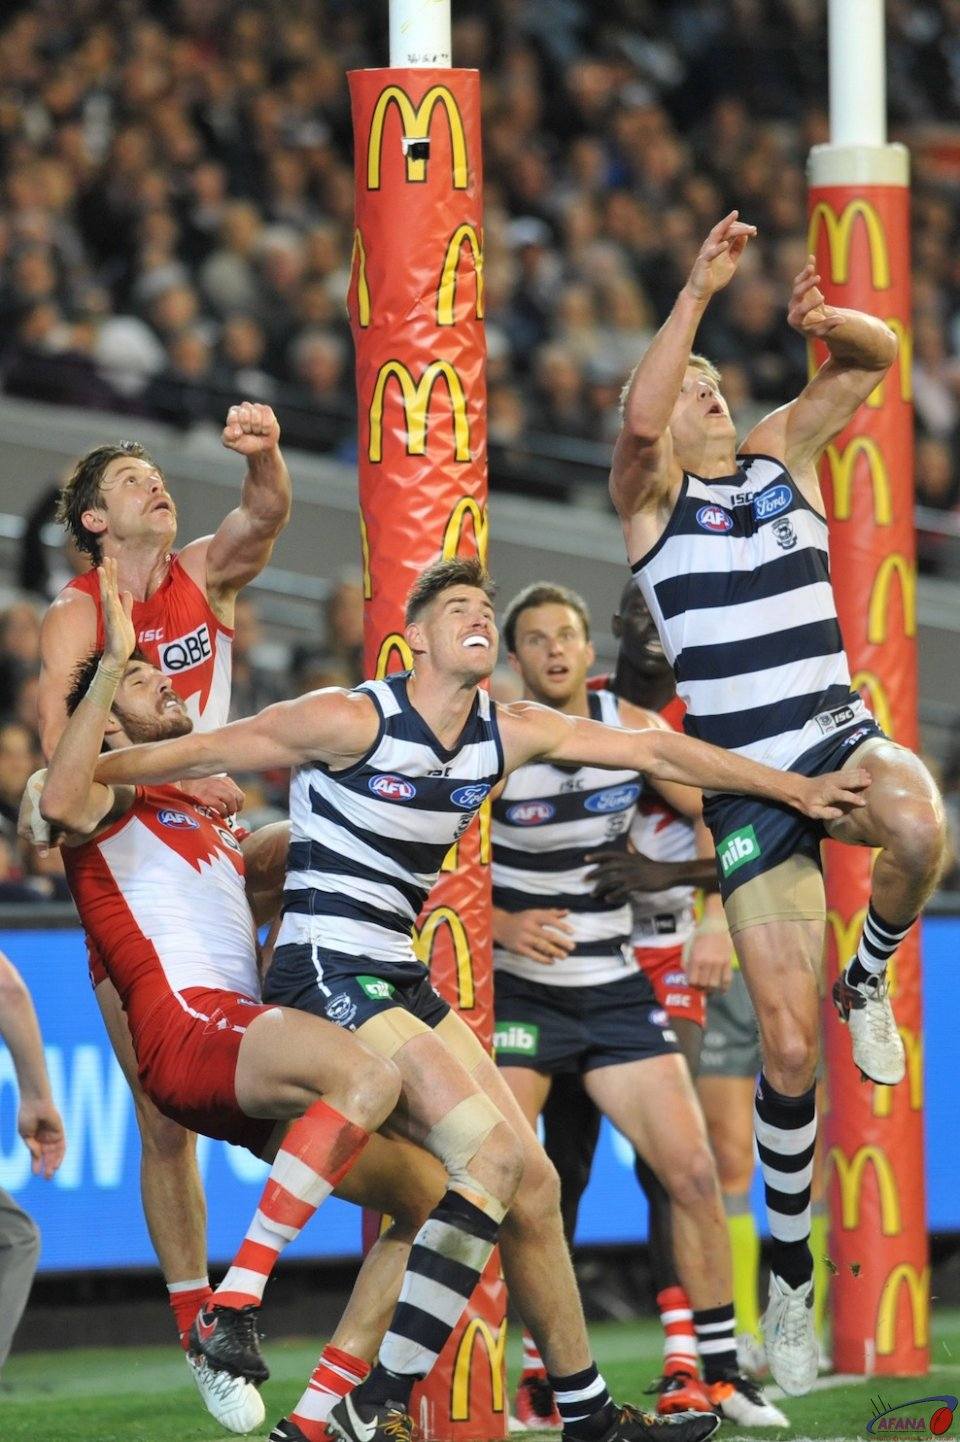 Big pack ready to launch as Geelong bomb the ball in